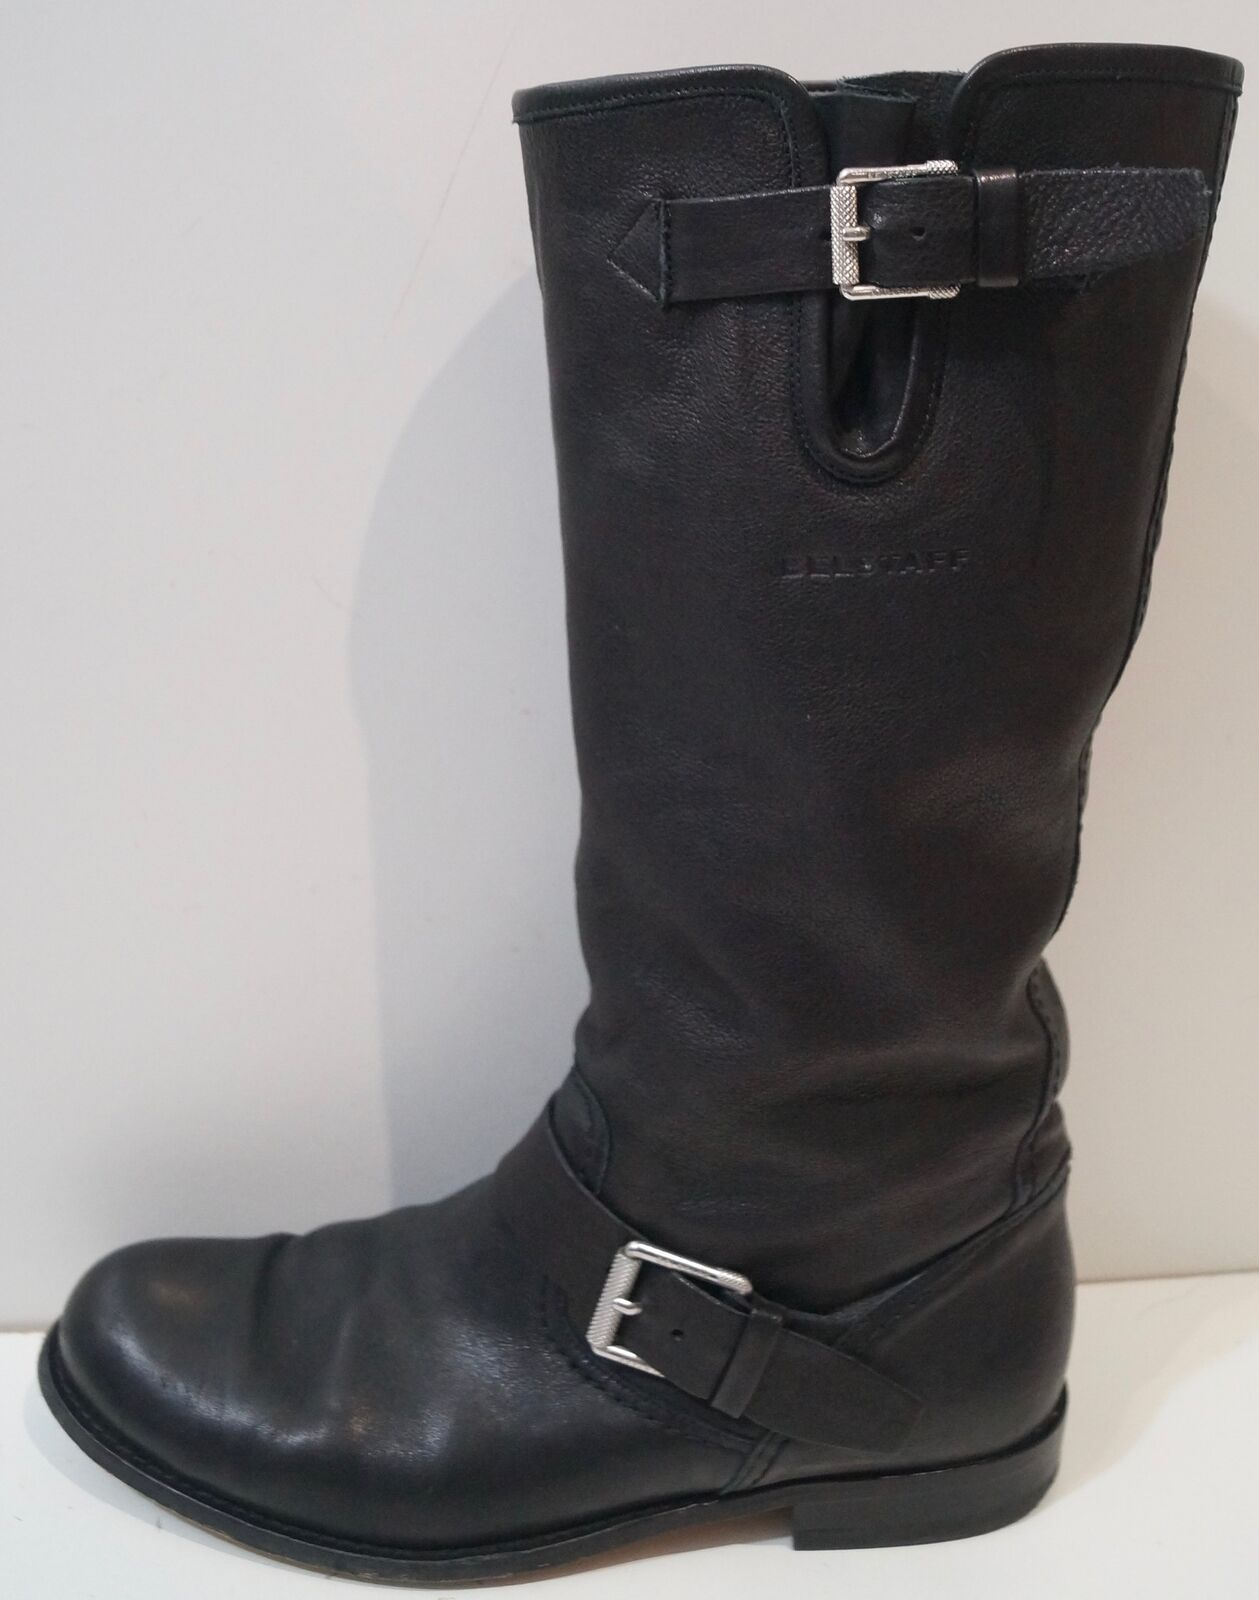 Belstaff made in italy italy italy noir argent à boucle mi-mollet hauteur bottes motard EU40 UK7 b635f6